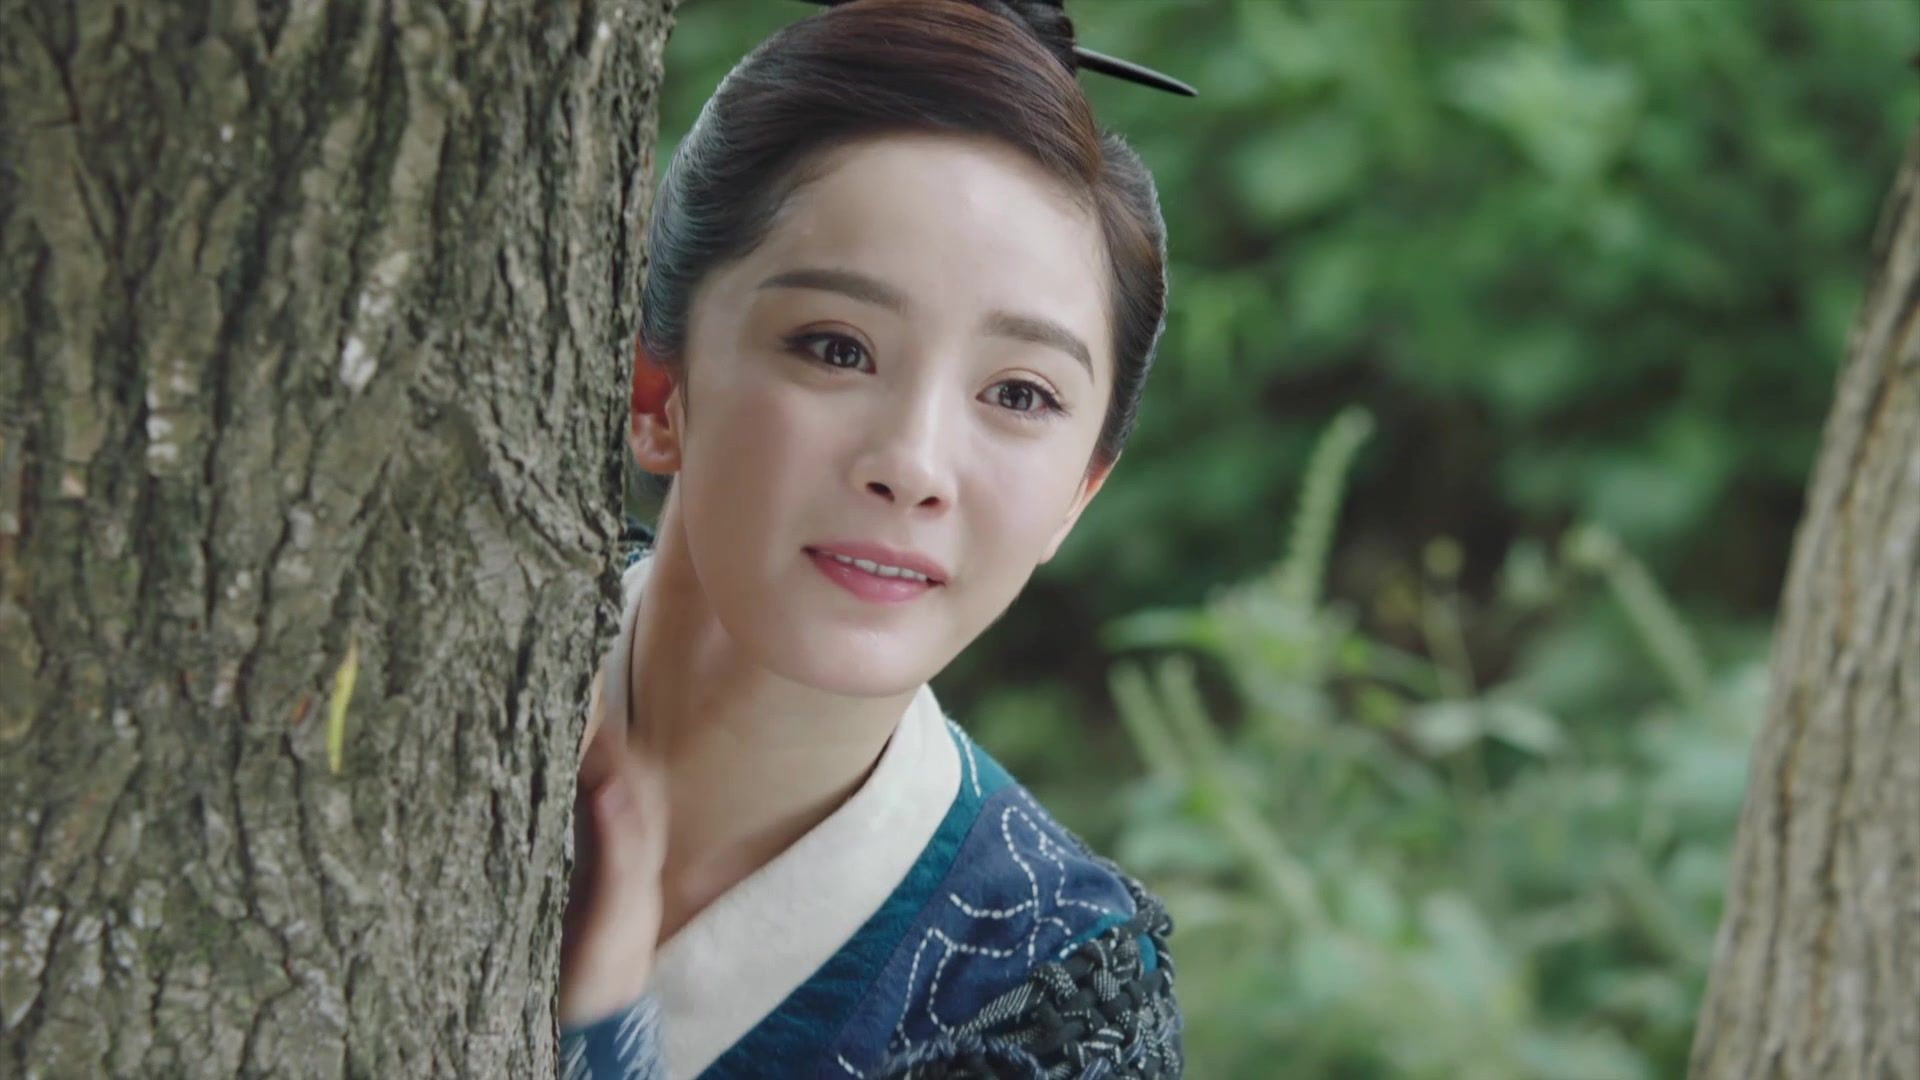 Marriage not dating ep 1 eng sub full screen hd-dvd